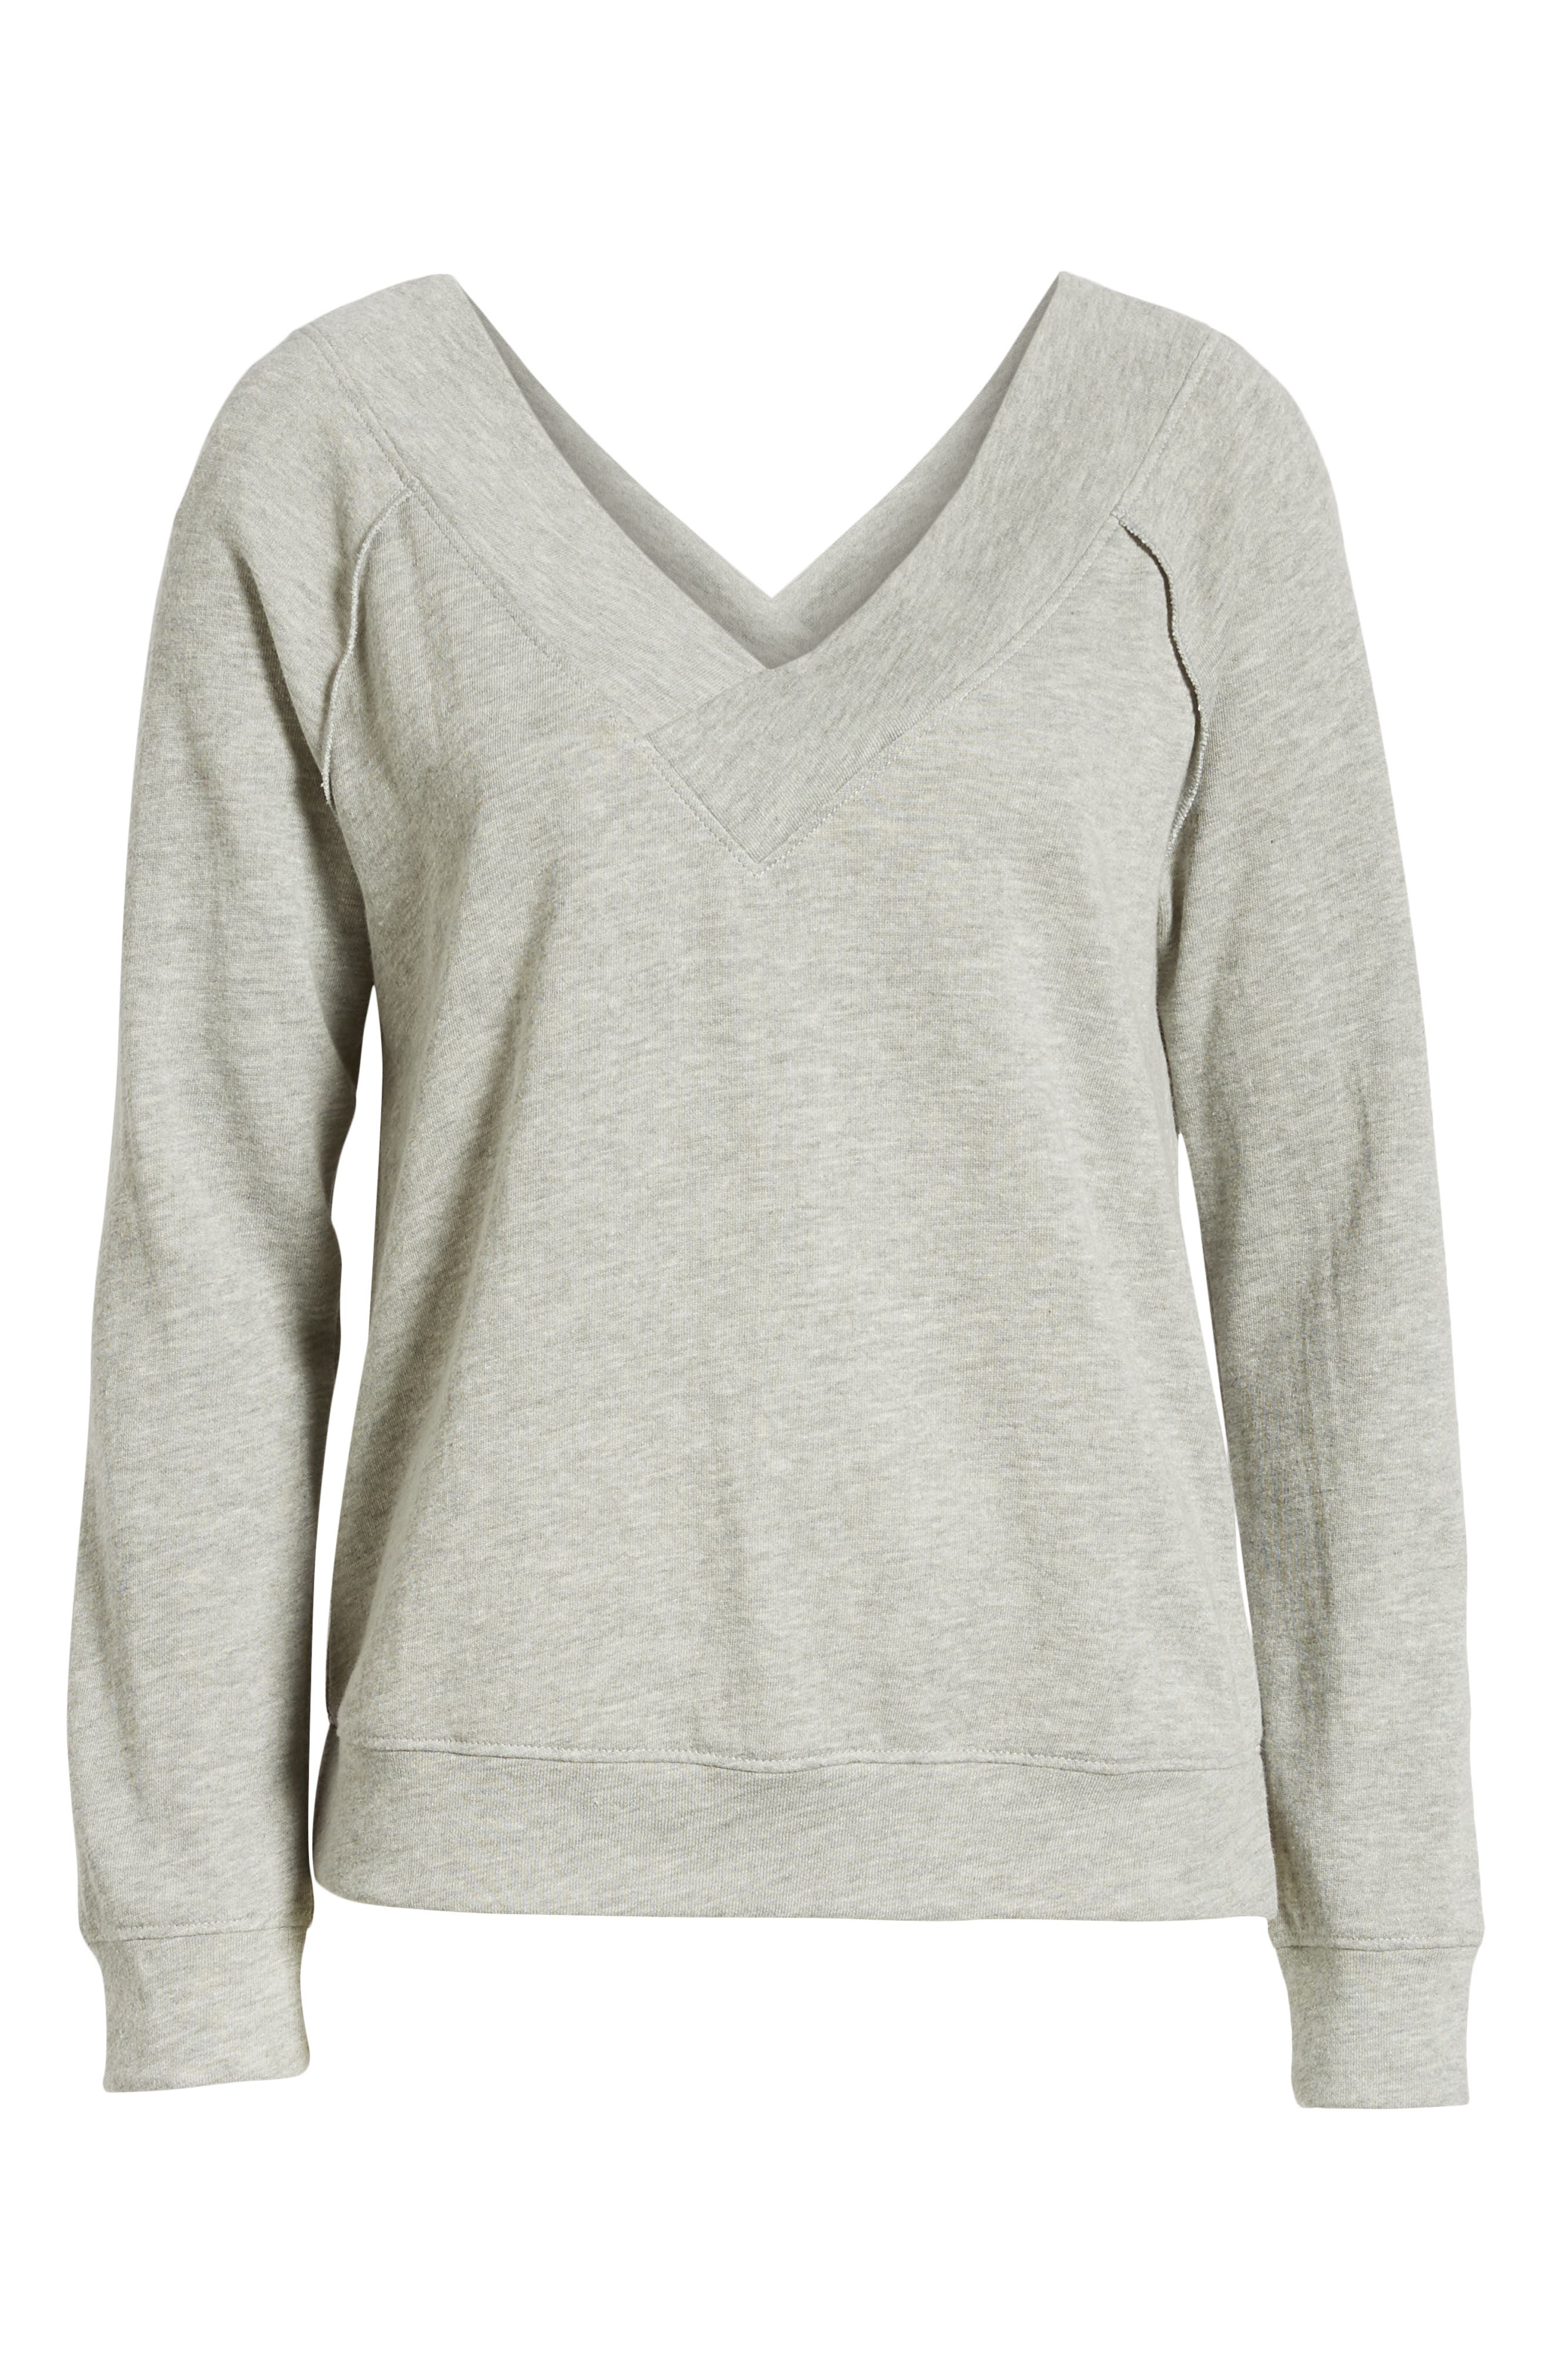 Double V-neck Sweatshirt,                             Alternate thumbnail 7, color,                             GREY PEARL HEATHER